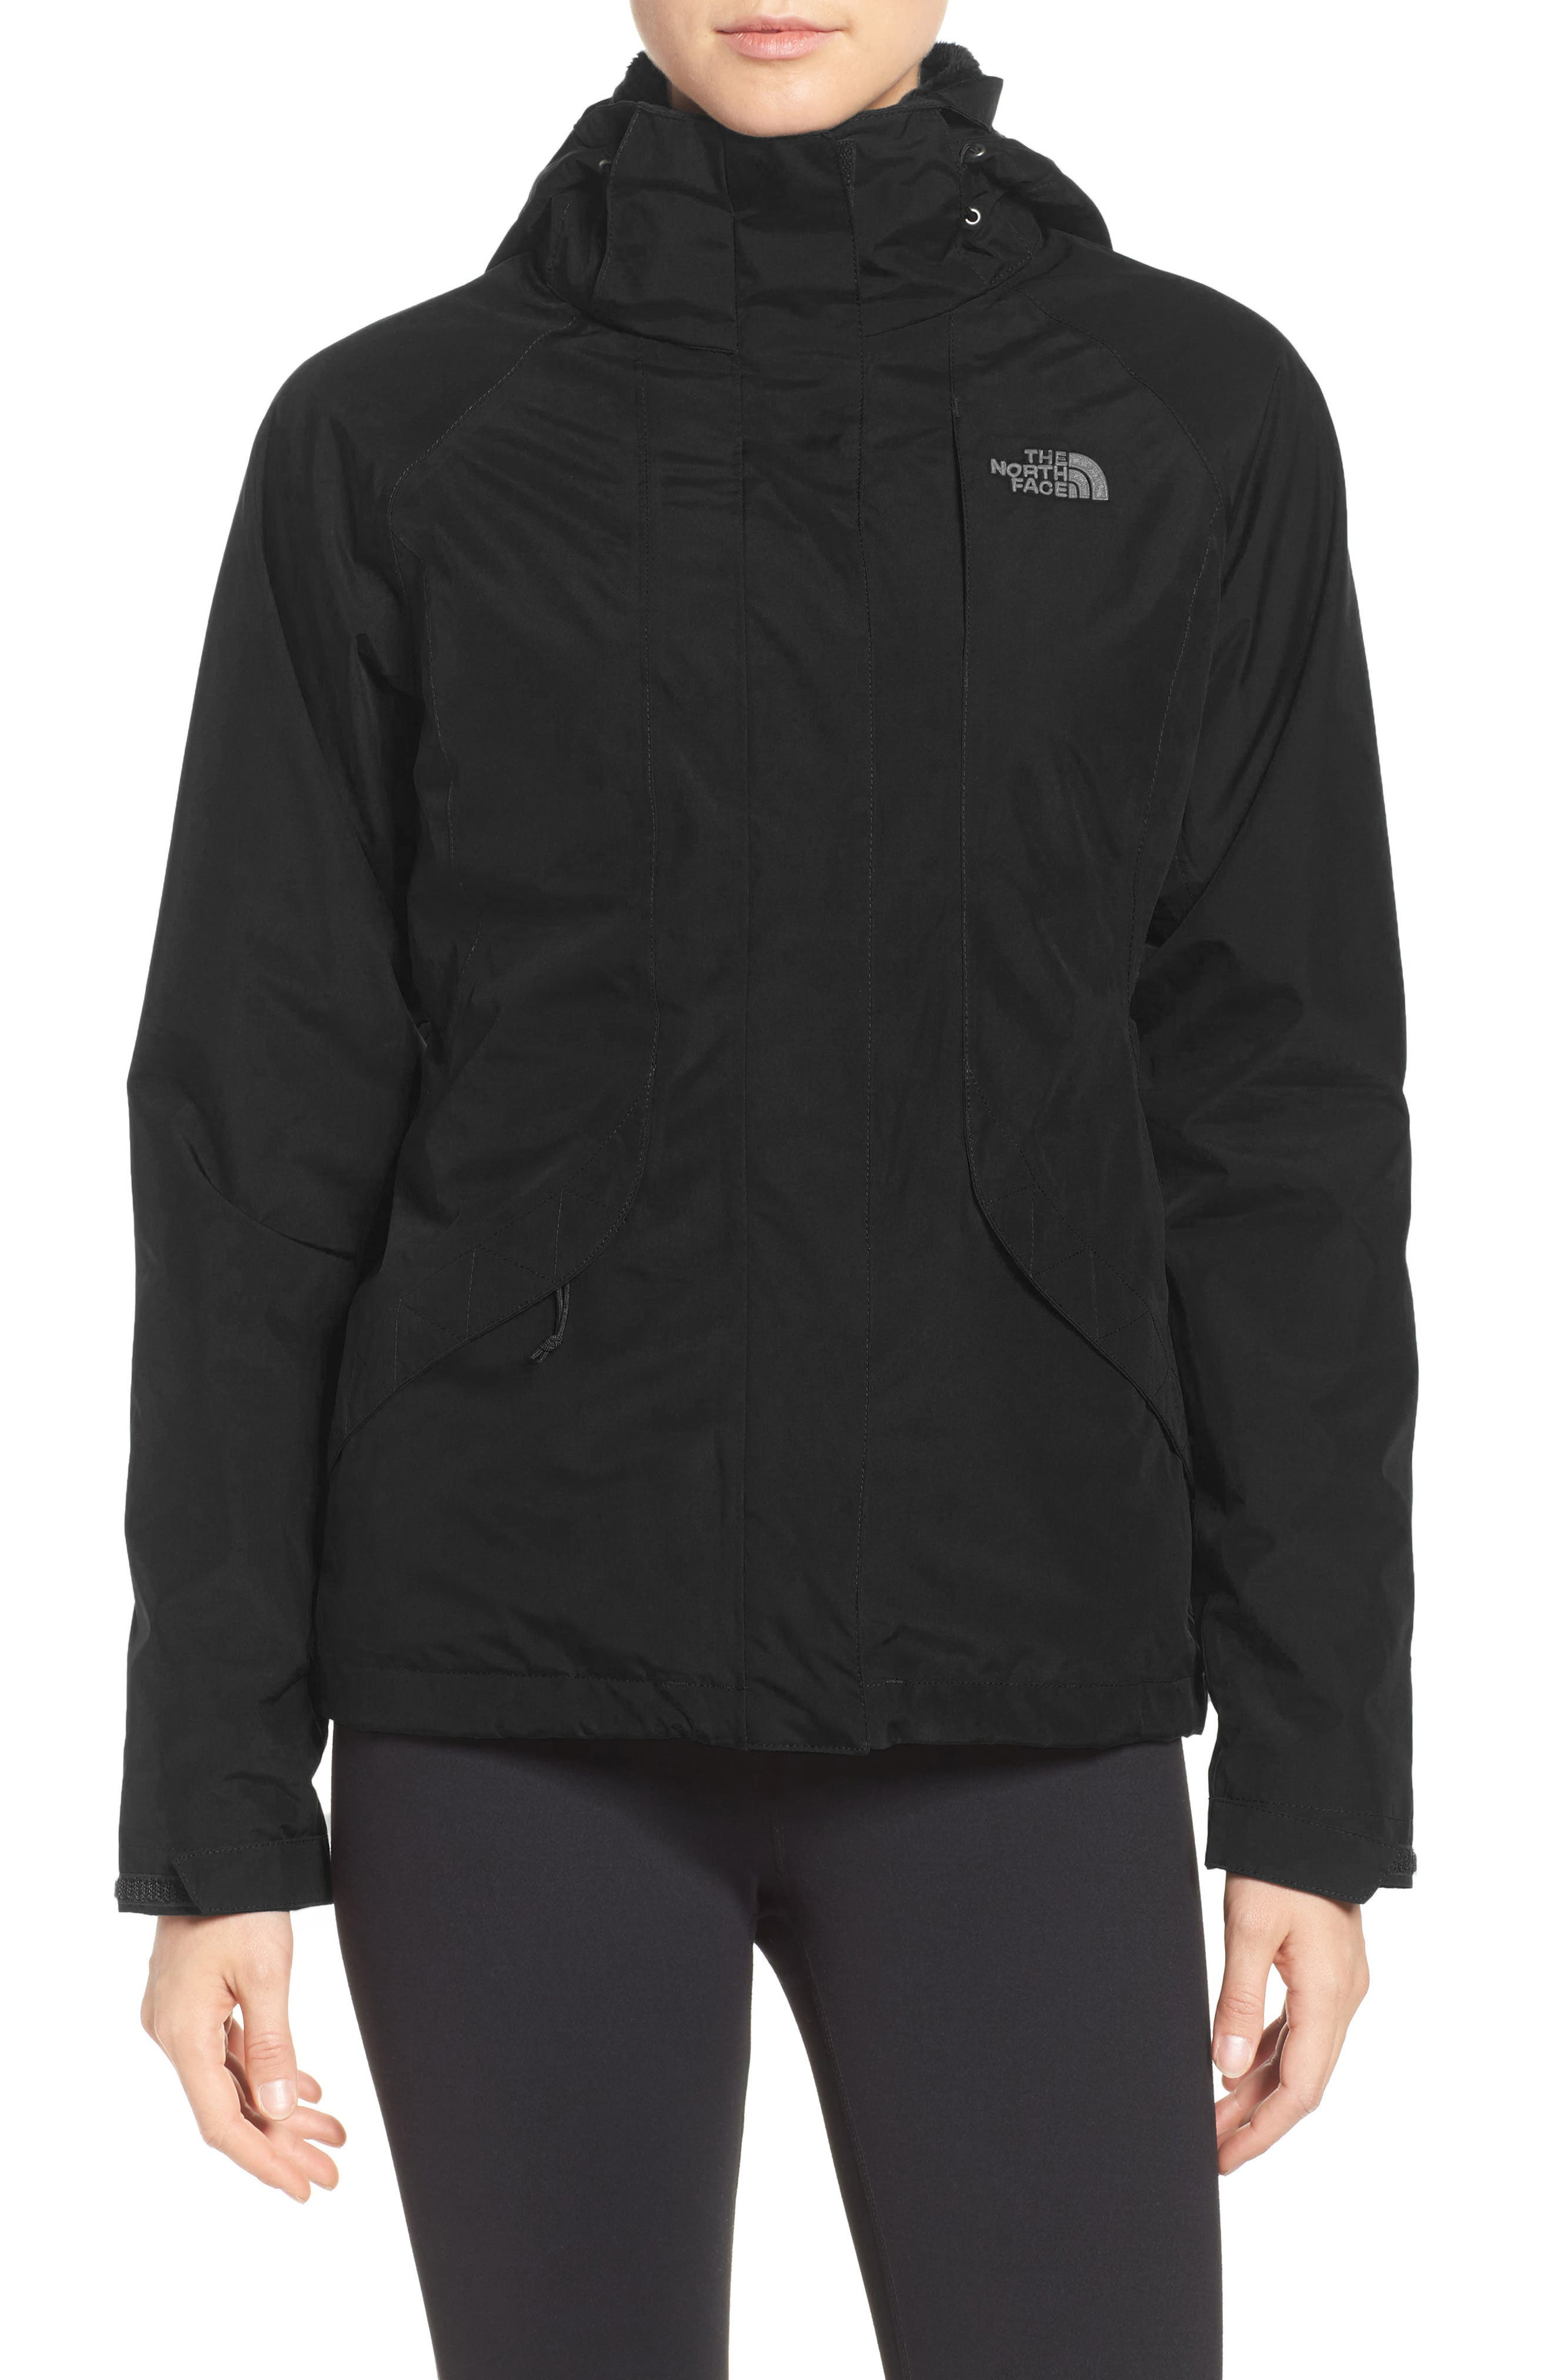 Boundary Triclimate<sup>®</sup> 3-in-1 Jacket,                             Alternate thumbnail 8, color,